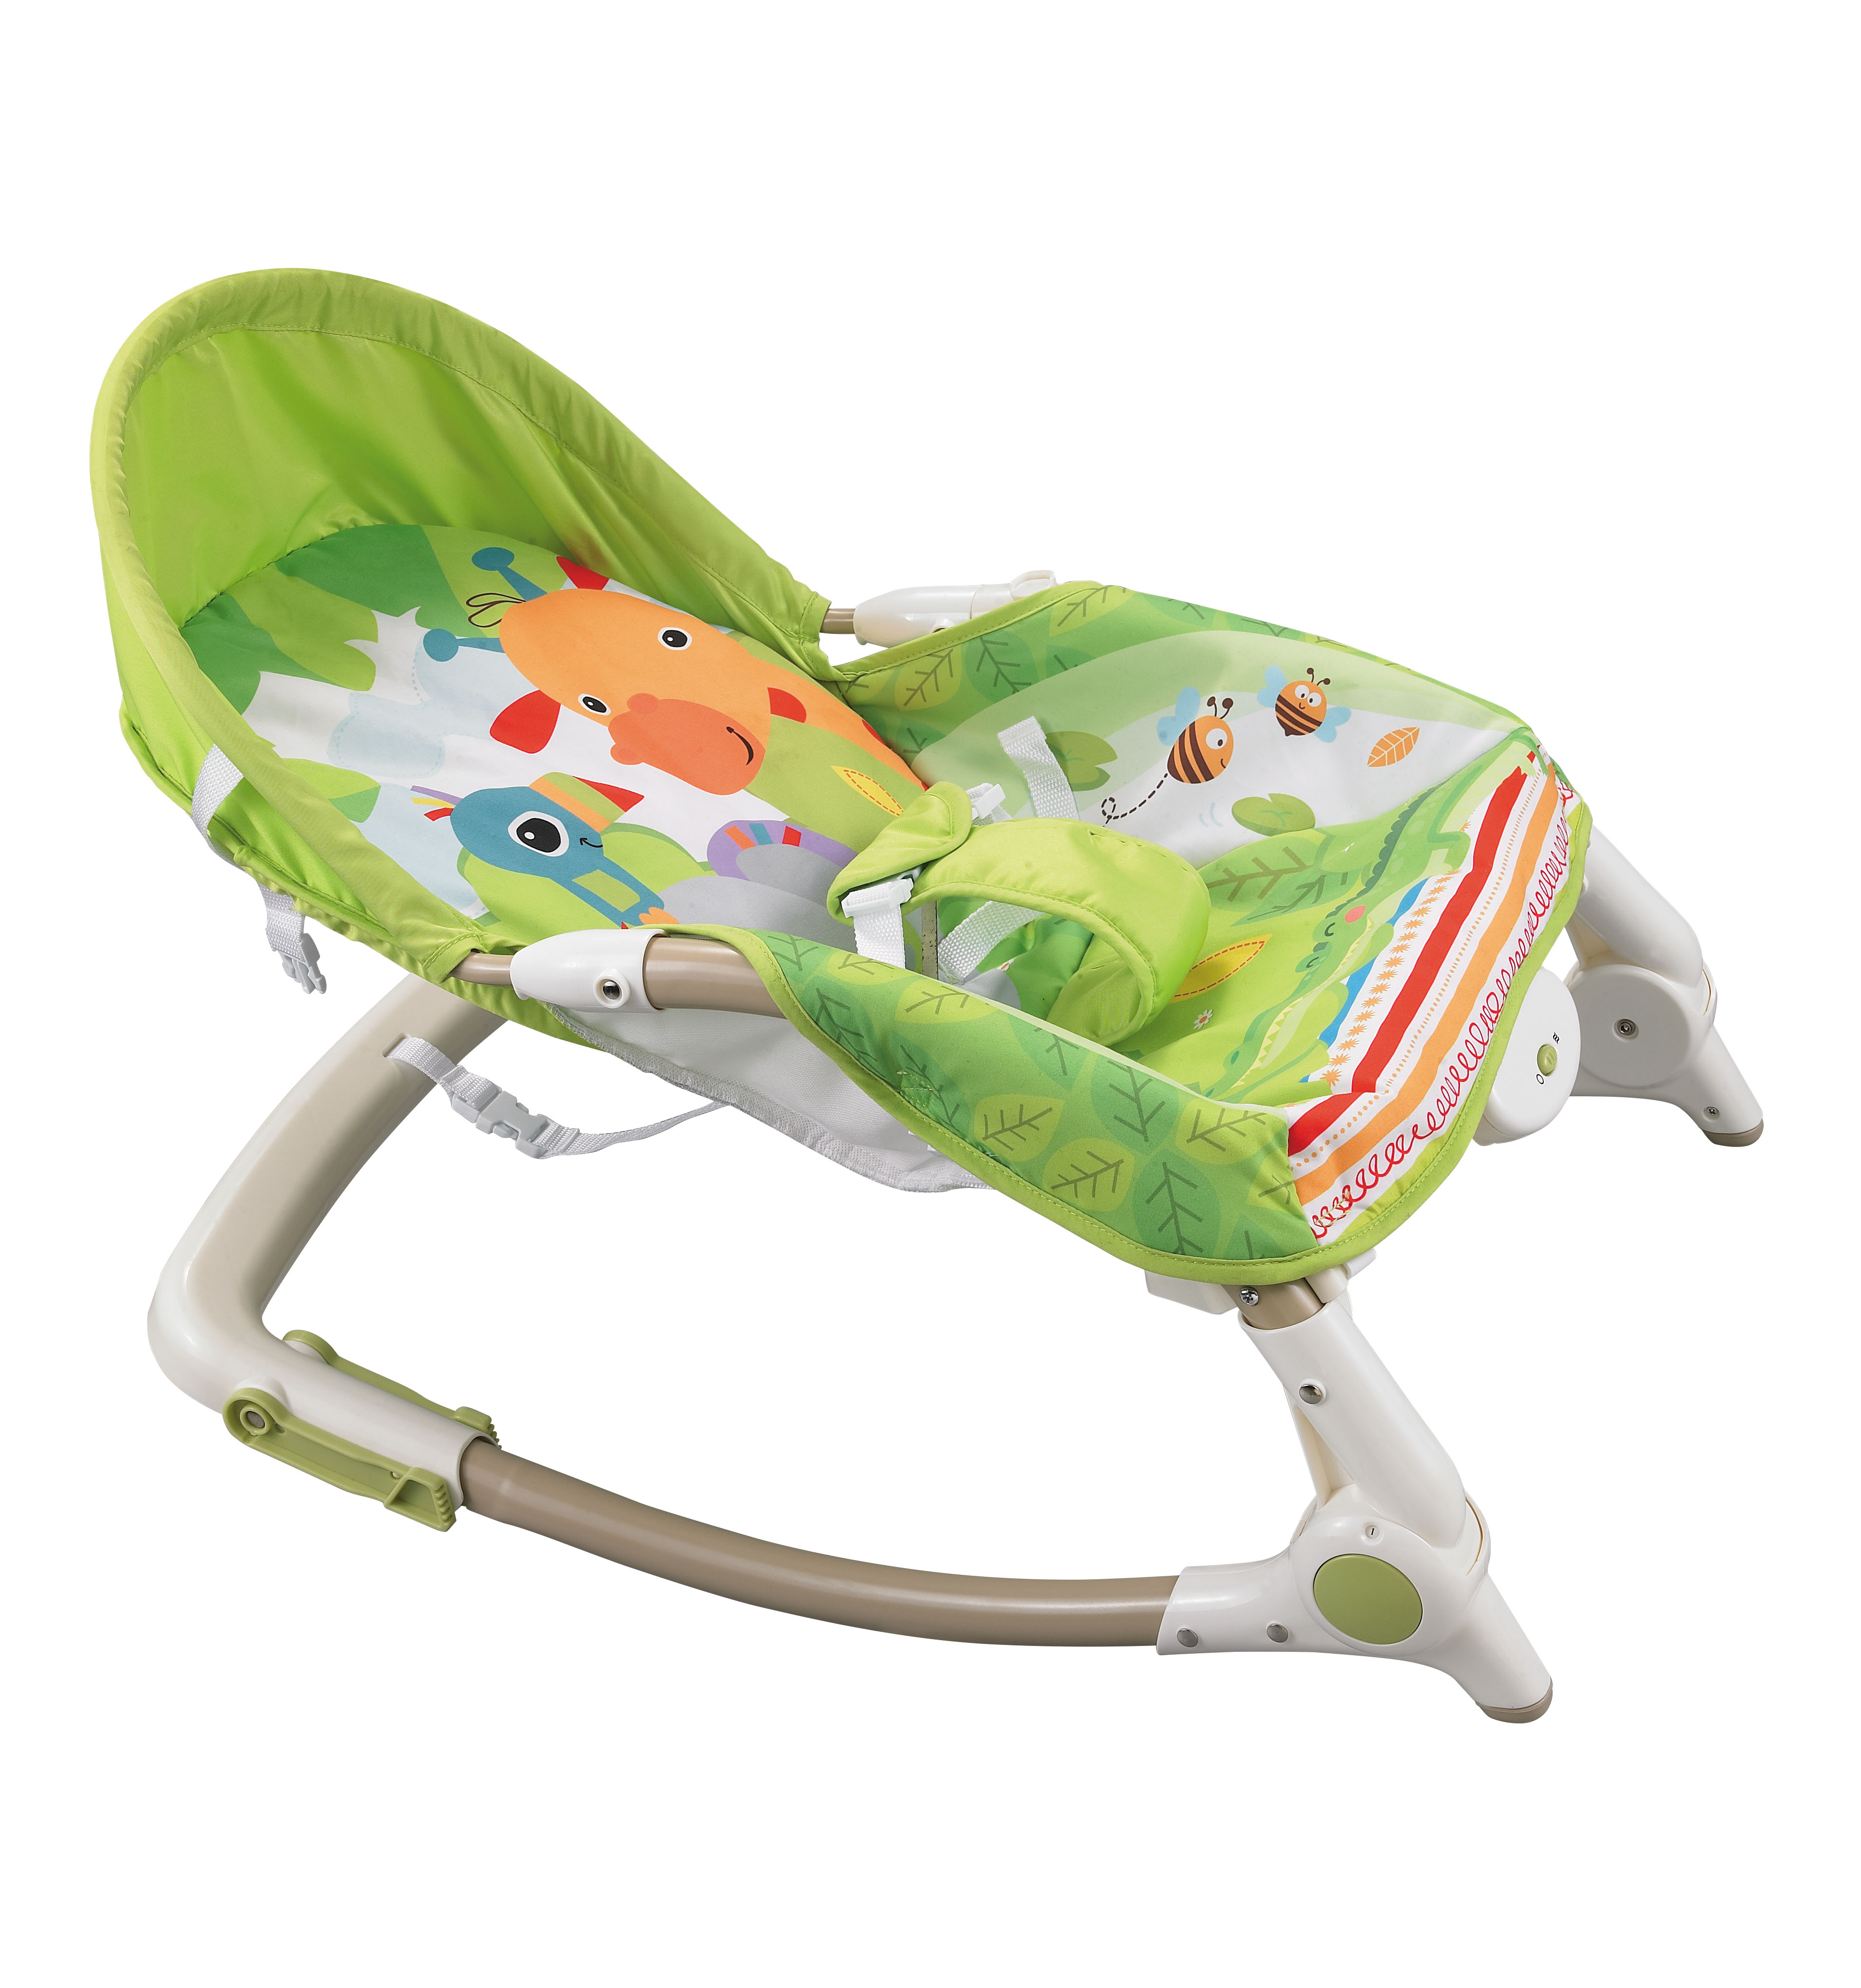 Konig Kids Newborn To Toddler Rocker Green